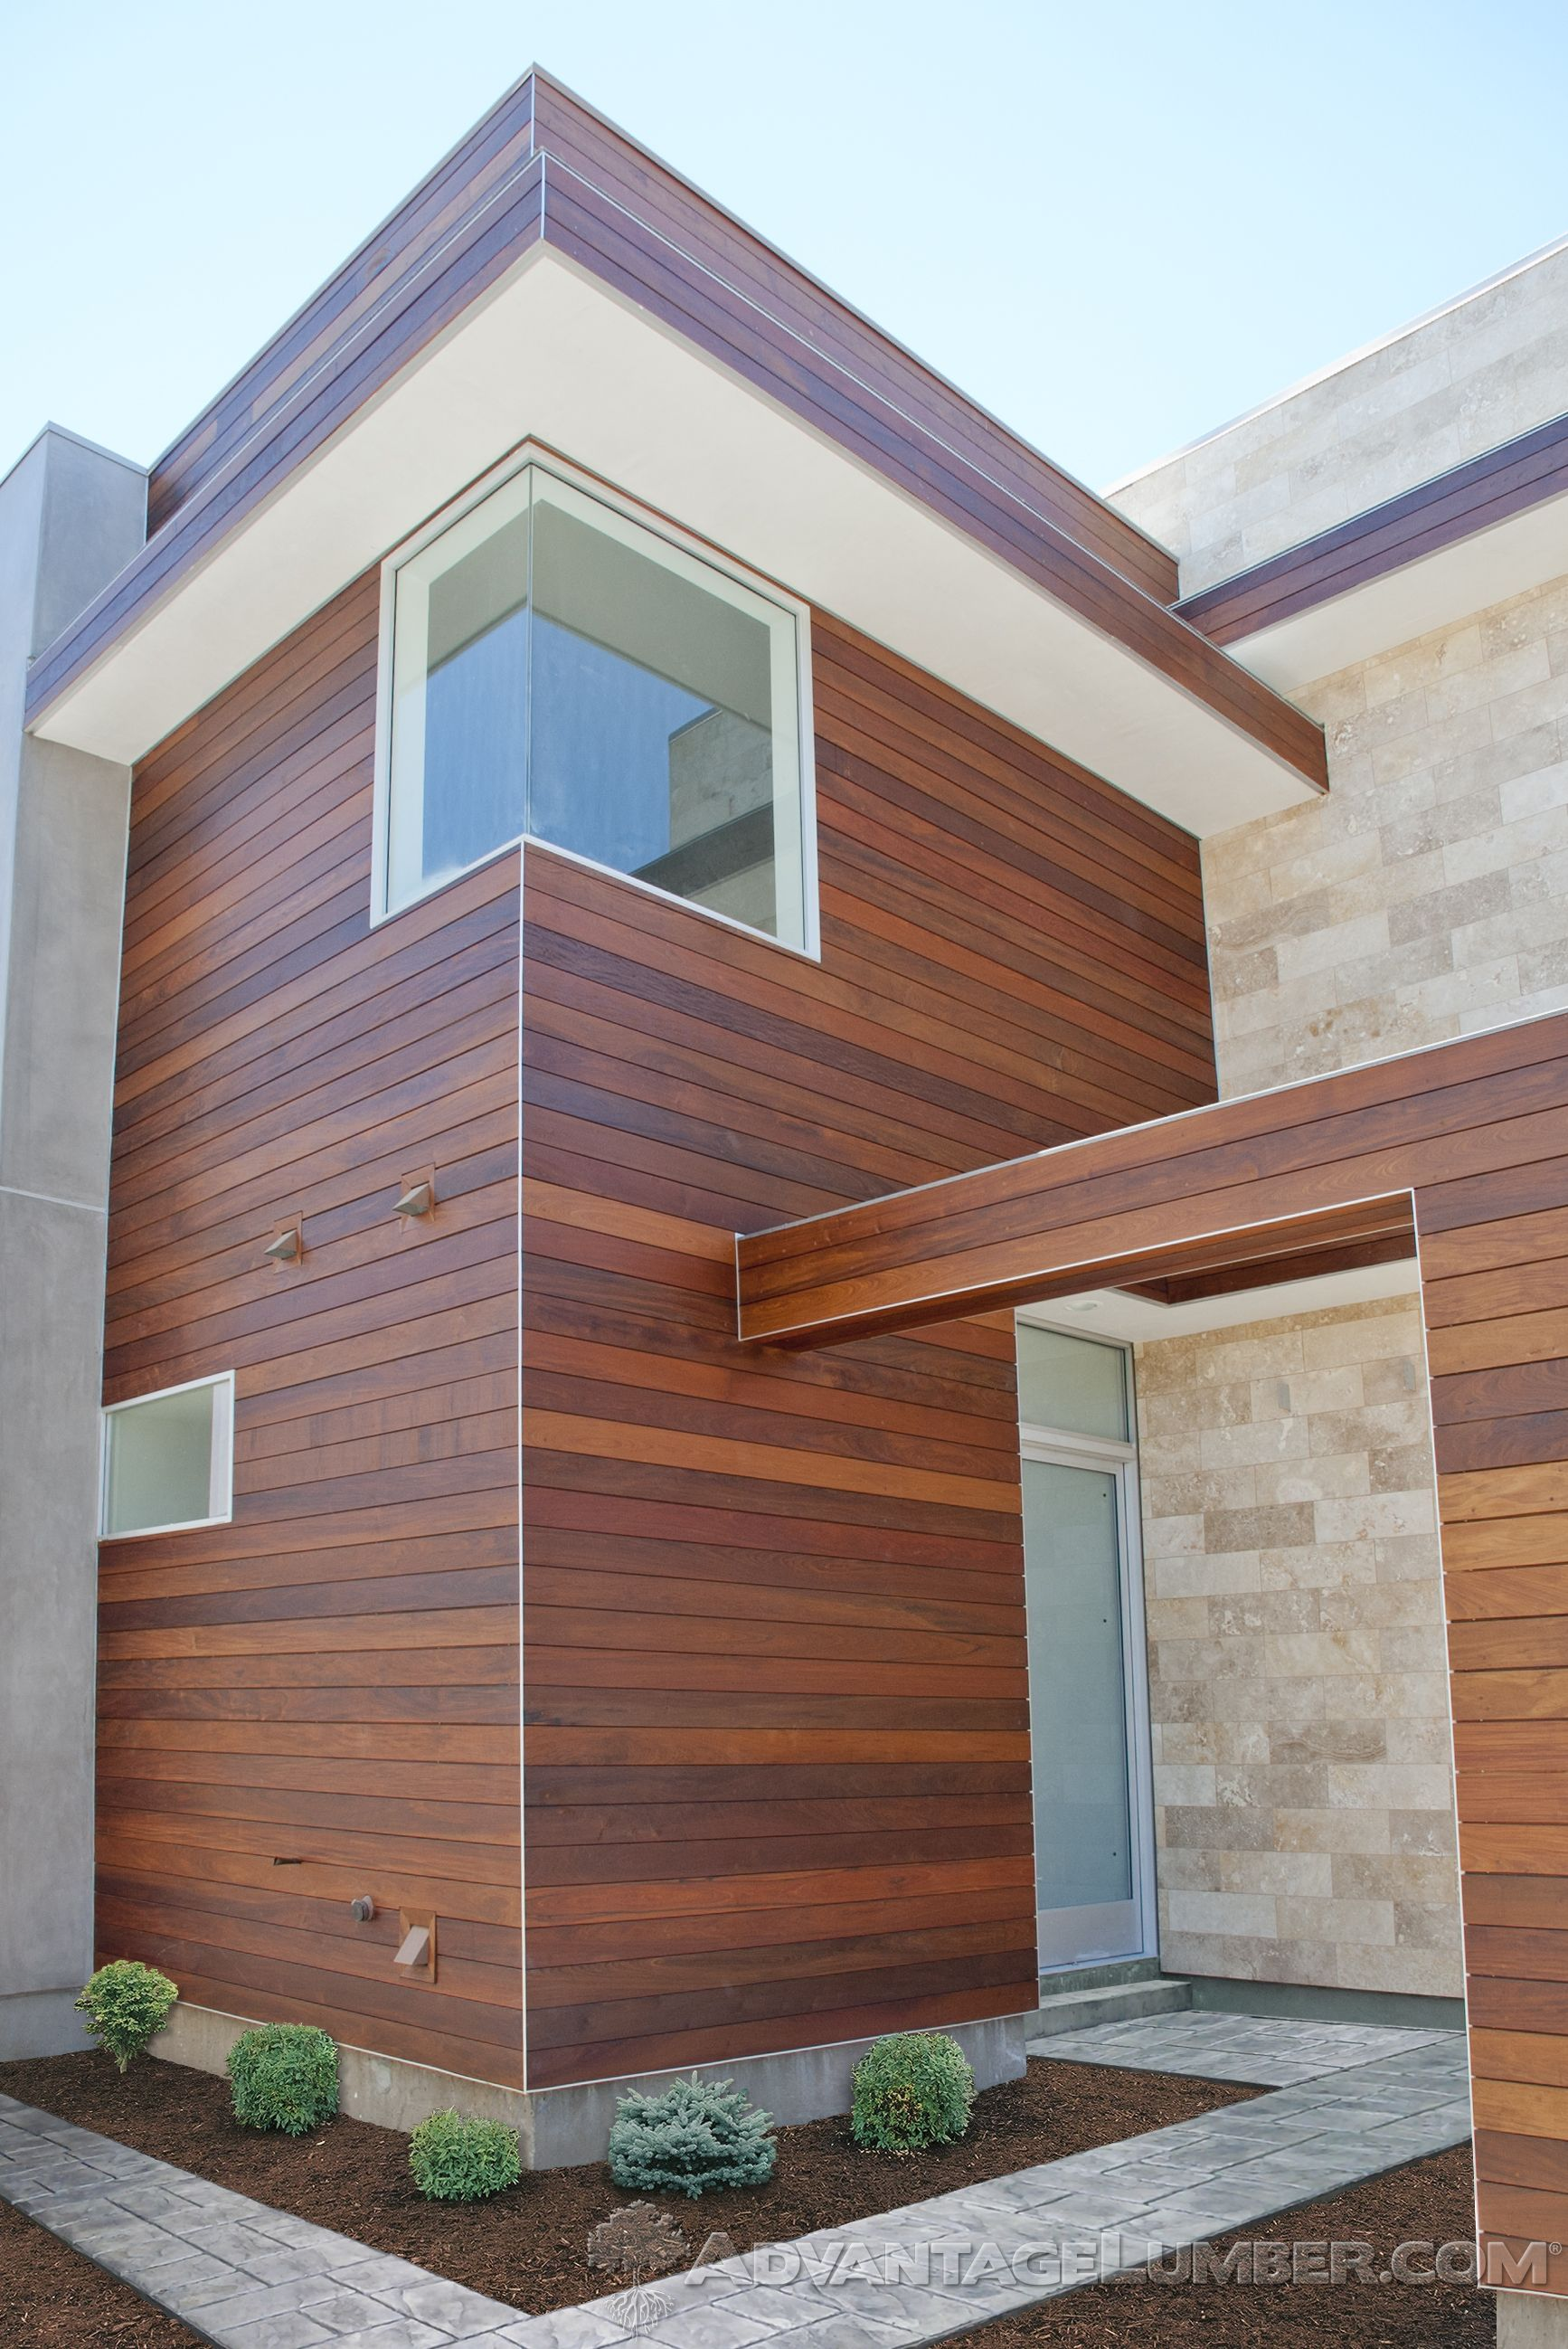 Modern and stylish exterior design ideas exterior - Exterior materials for buildings ...